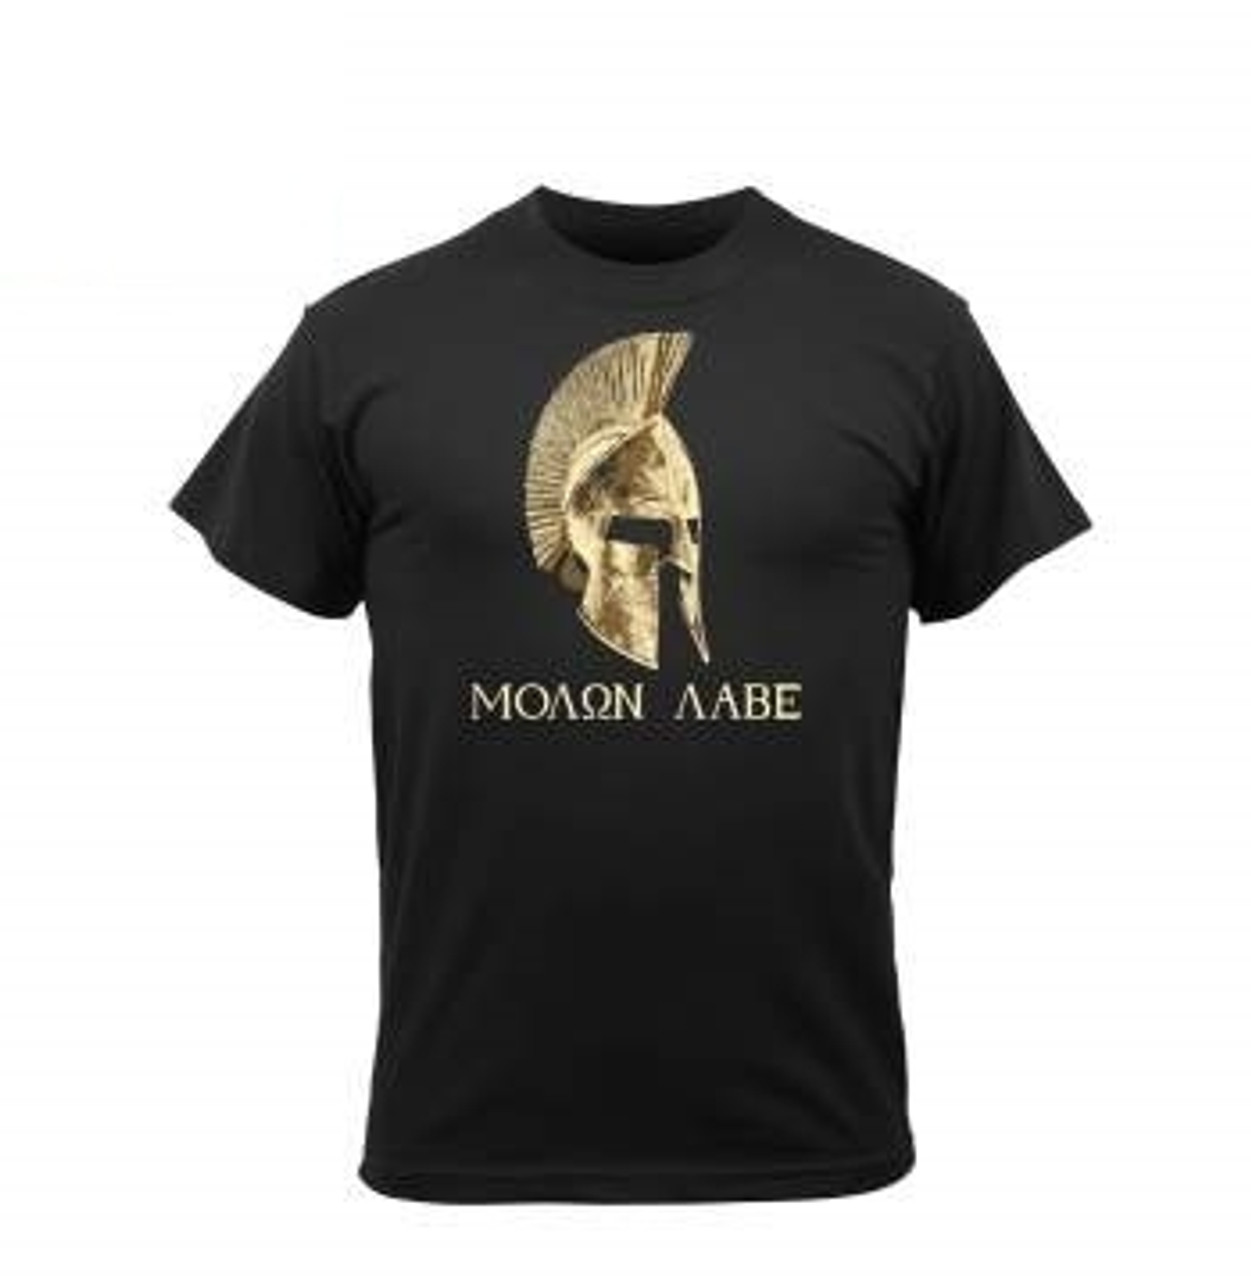 Molon Labe T-Shirt from Hessen Tactical